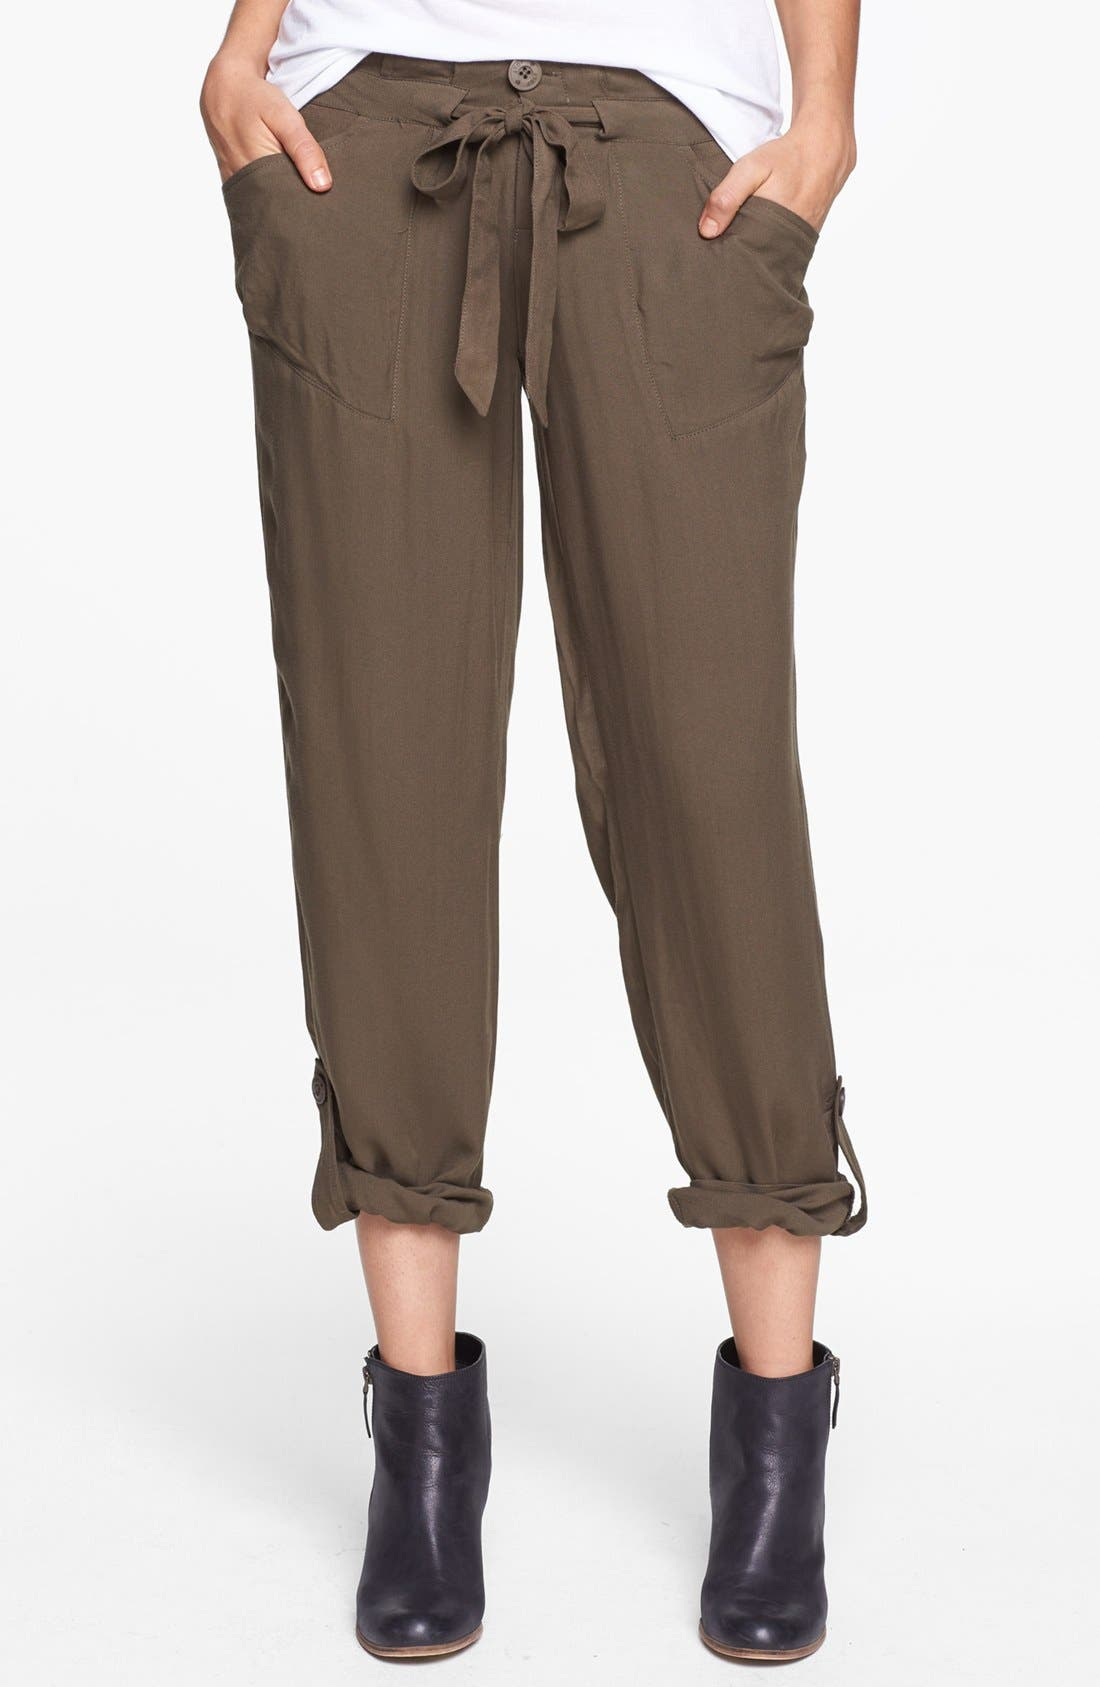 Alternate Image 1 Selected - Jolt Drawstring Woven Pants (Juniors)